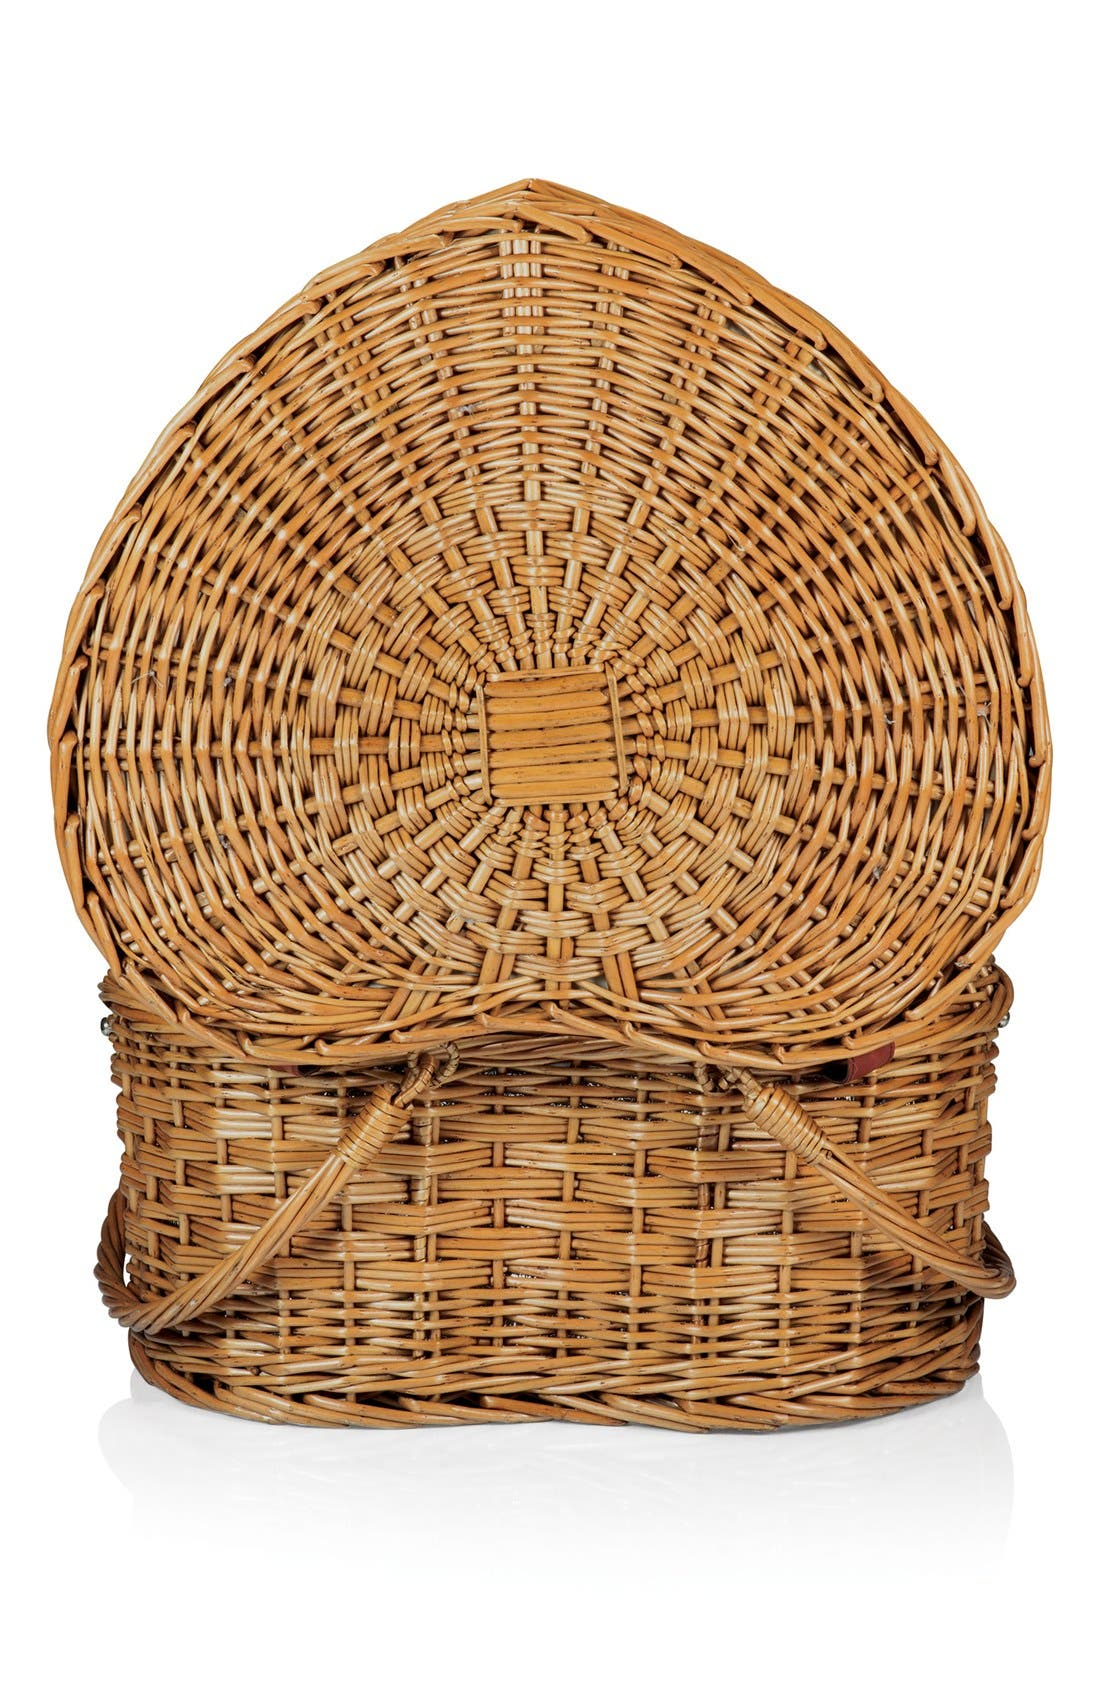 Heart Shaped Wicker Picnic Basket,                             Alternate thumbnail 3, color,                             Brown